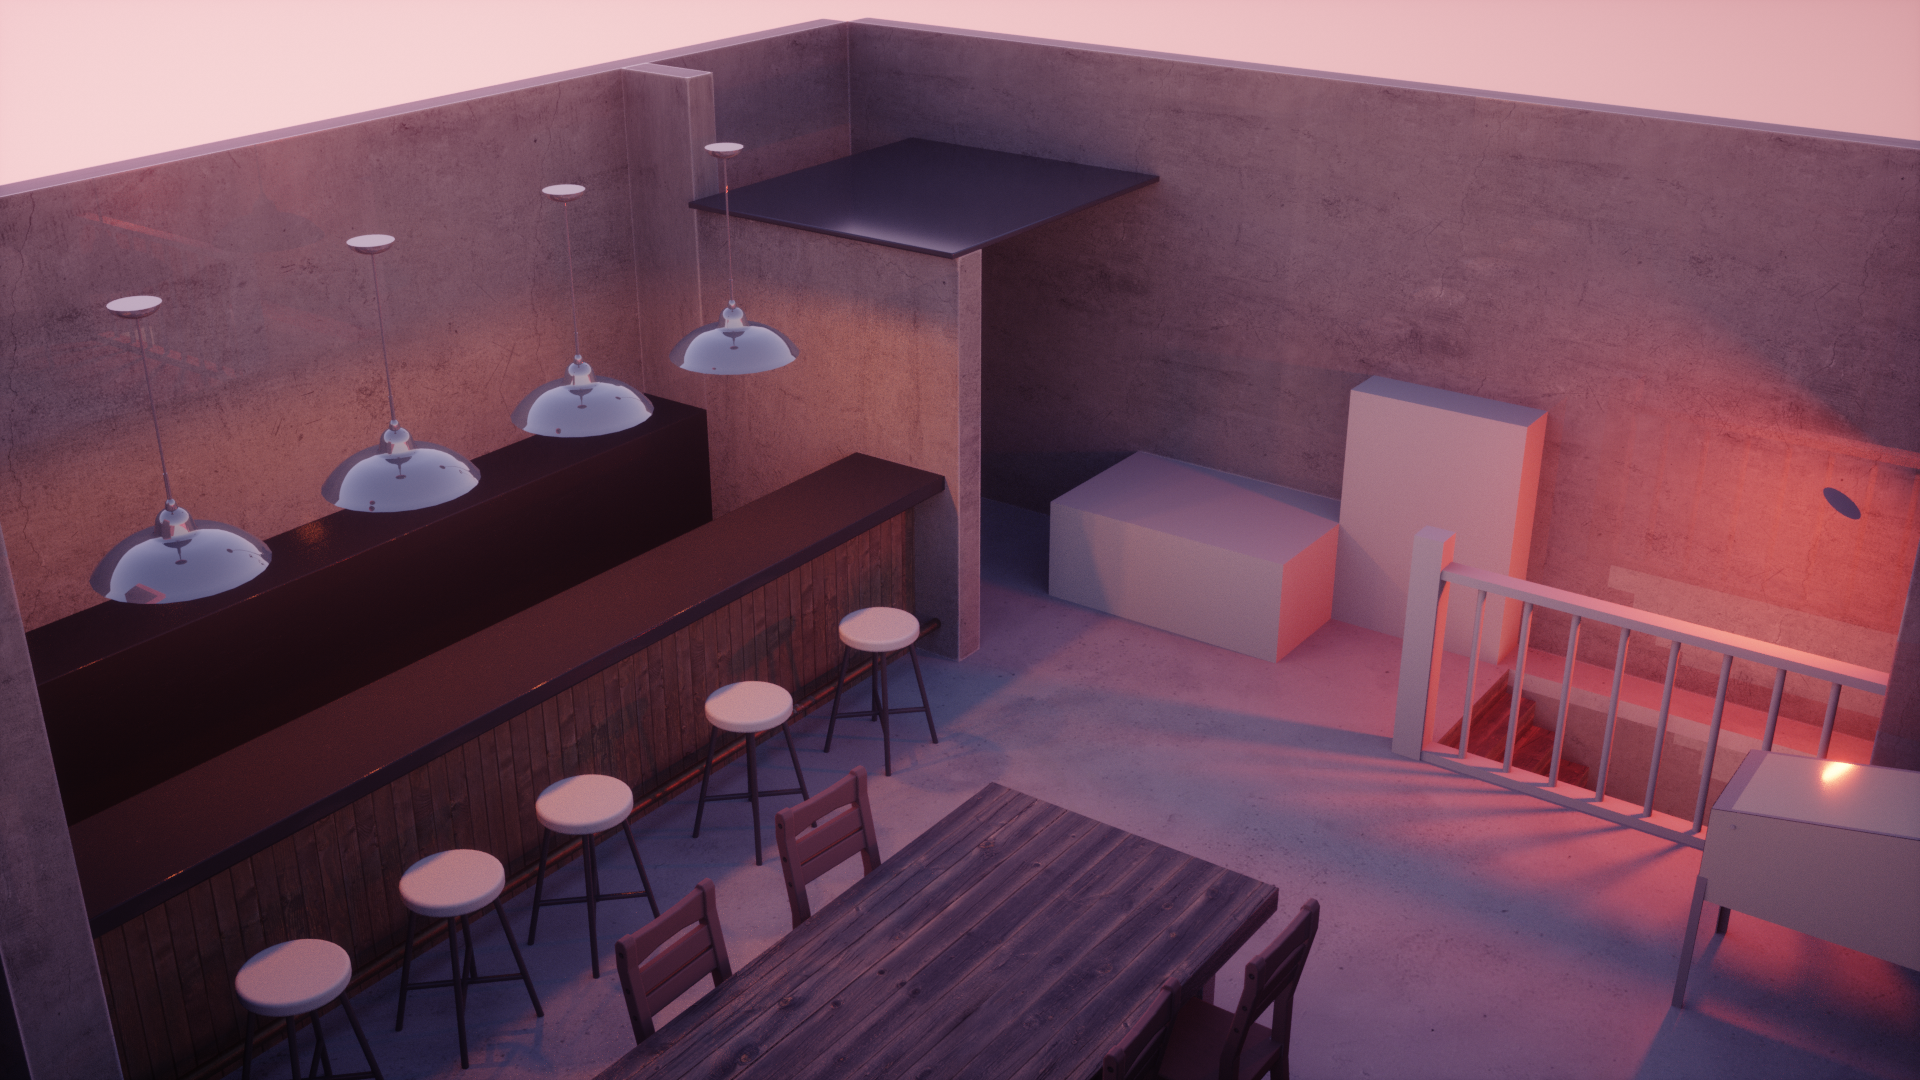 J's Bar (Anime style scene design, Octane Render)